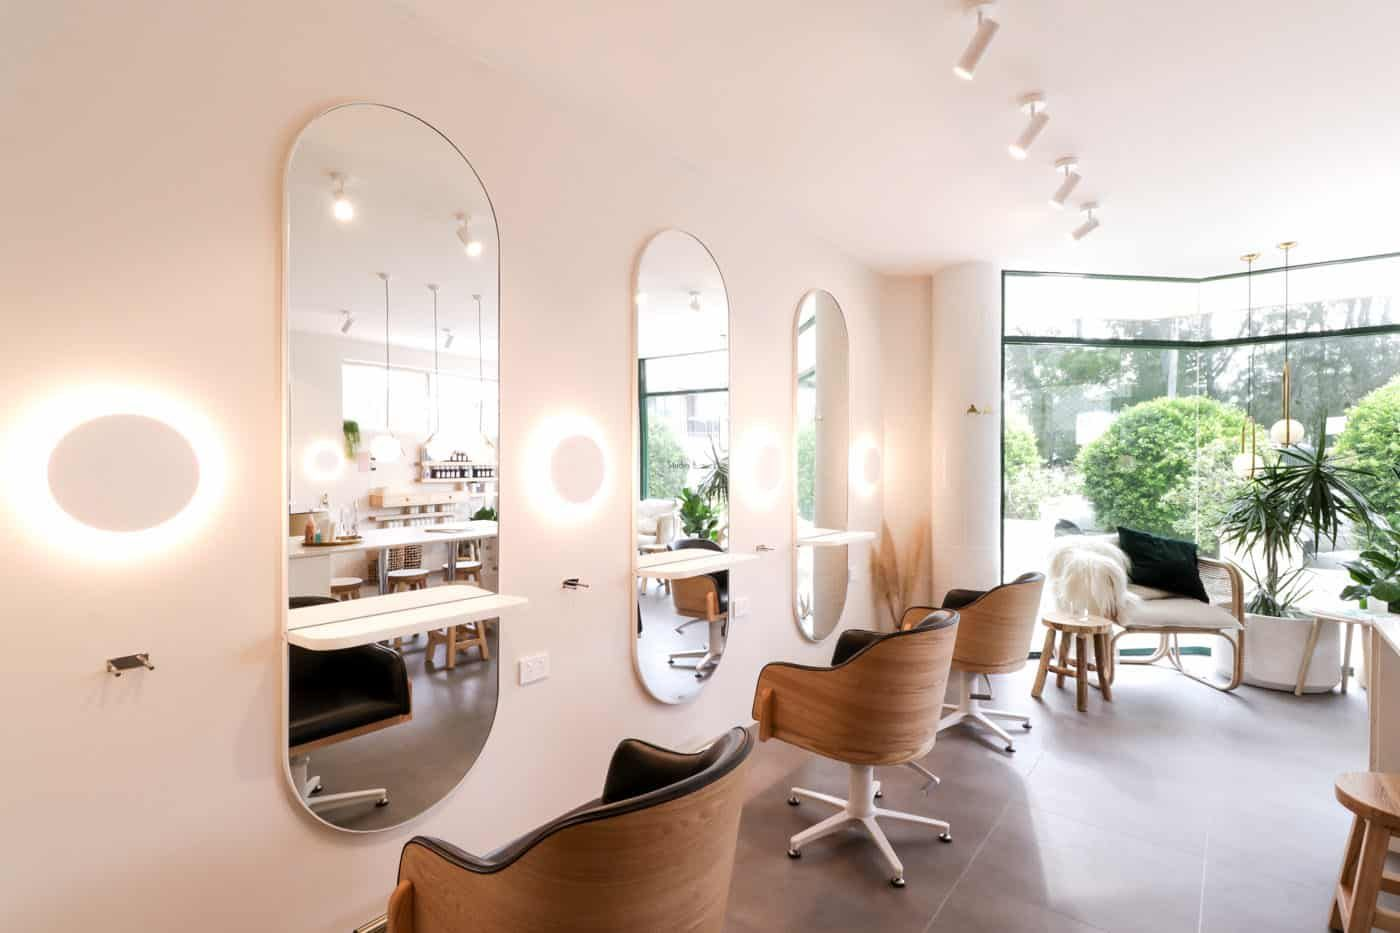 17 Creative Hair Salon Lighting Design Ideas In 2020 Hair Salon Design Hair Salon Decor Salon Suites Decor